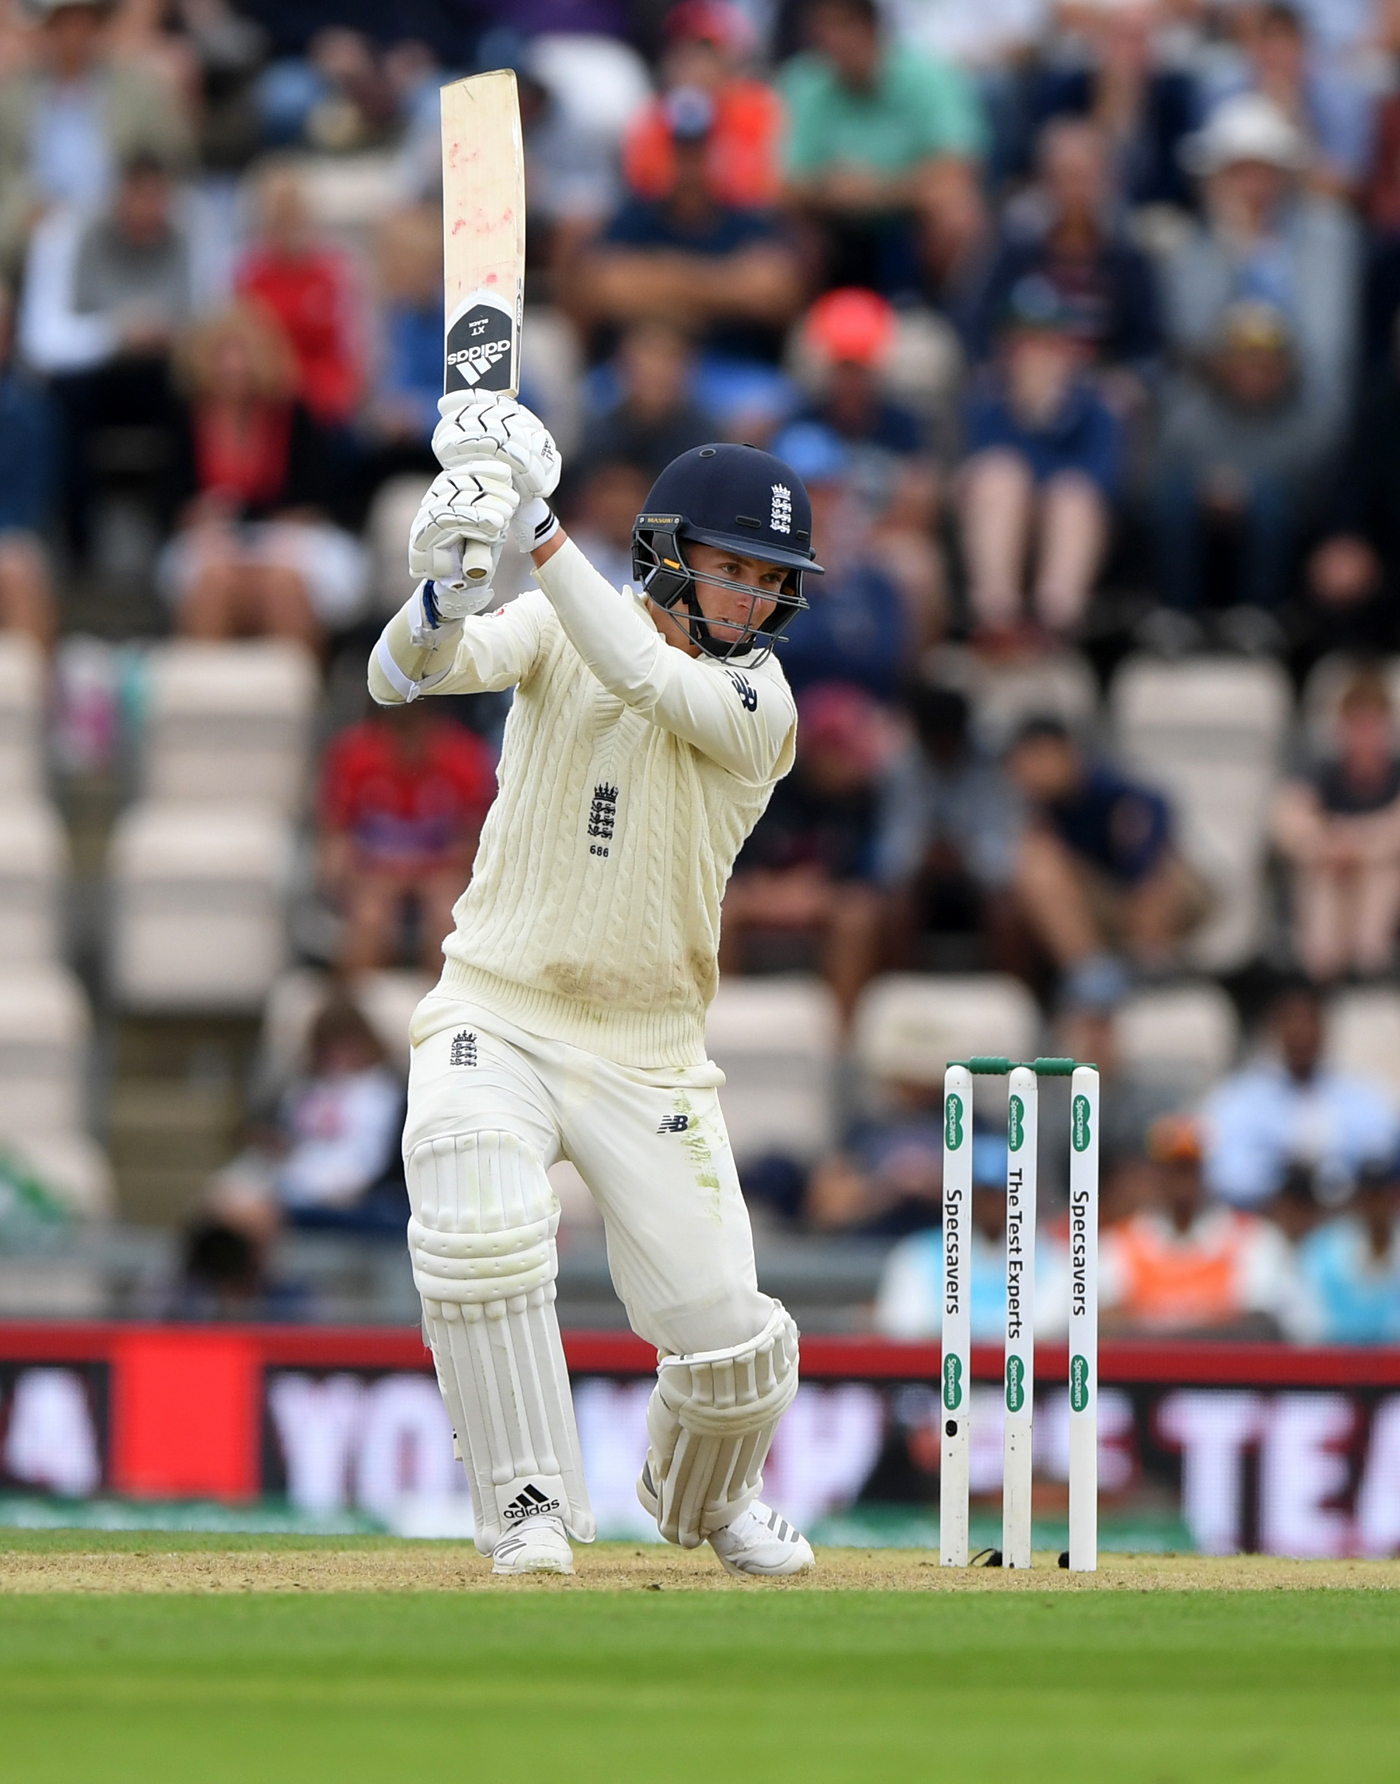 ENG vs IND 2018: I Was Disappointed But Wasn't Proving A Point At All, Says Sam Curran